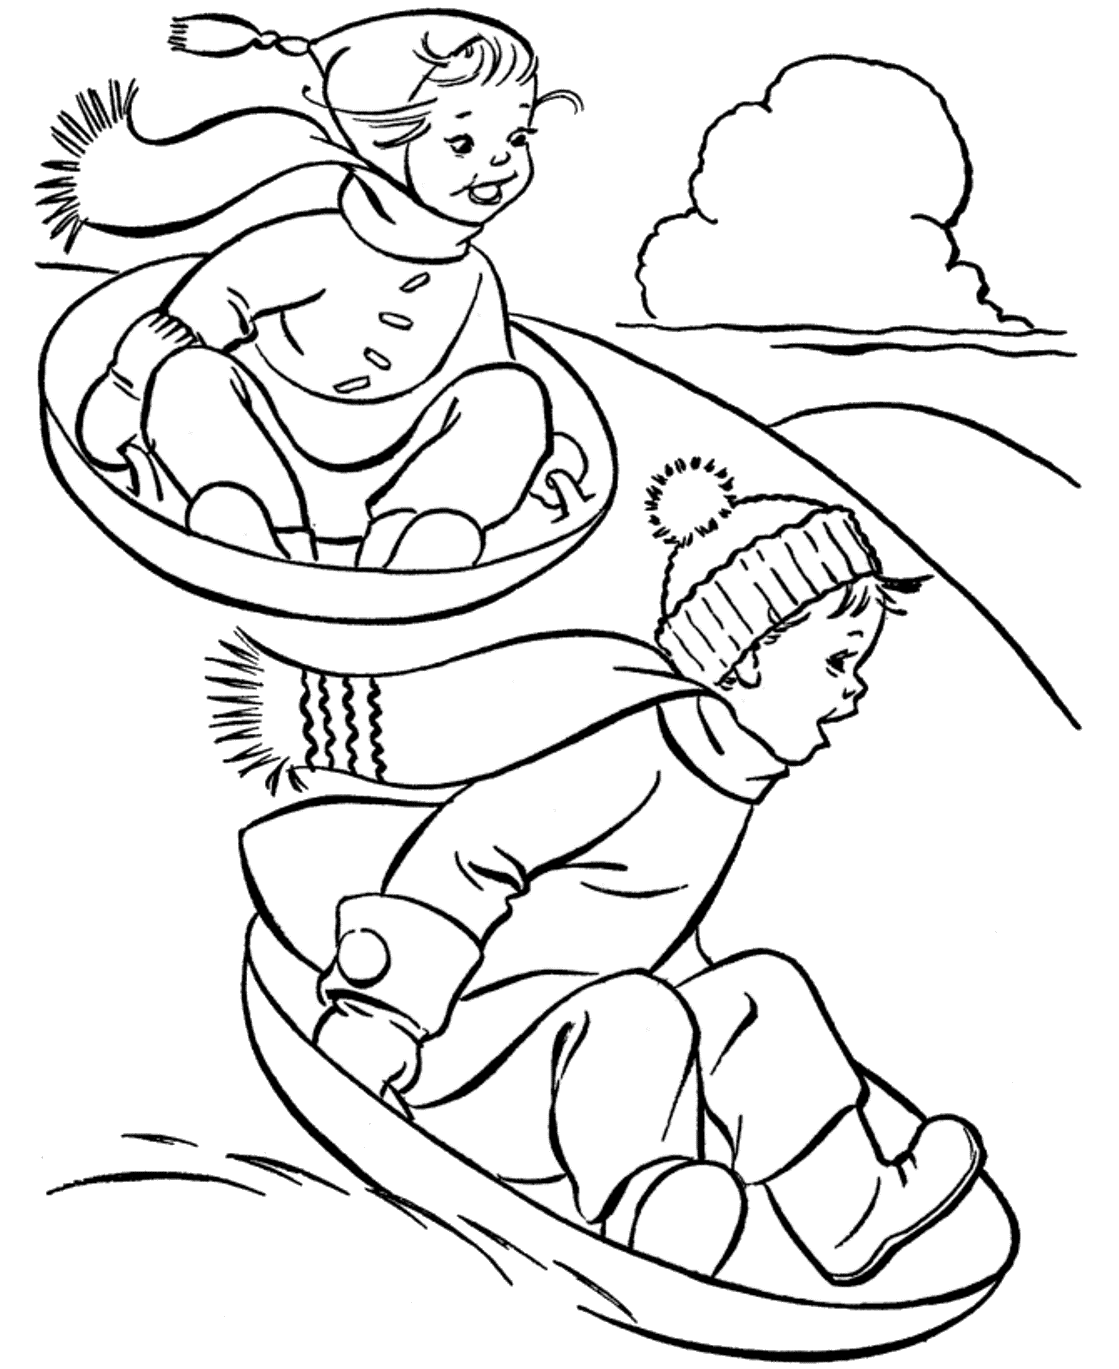 winter sports coloring pages sports photograph coloring pages kids winter sports pages coloring winter sports